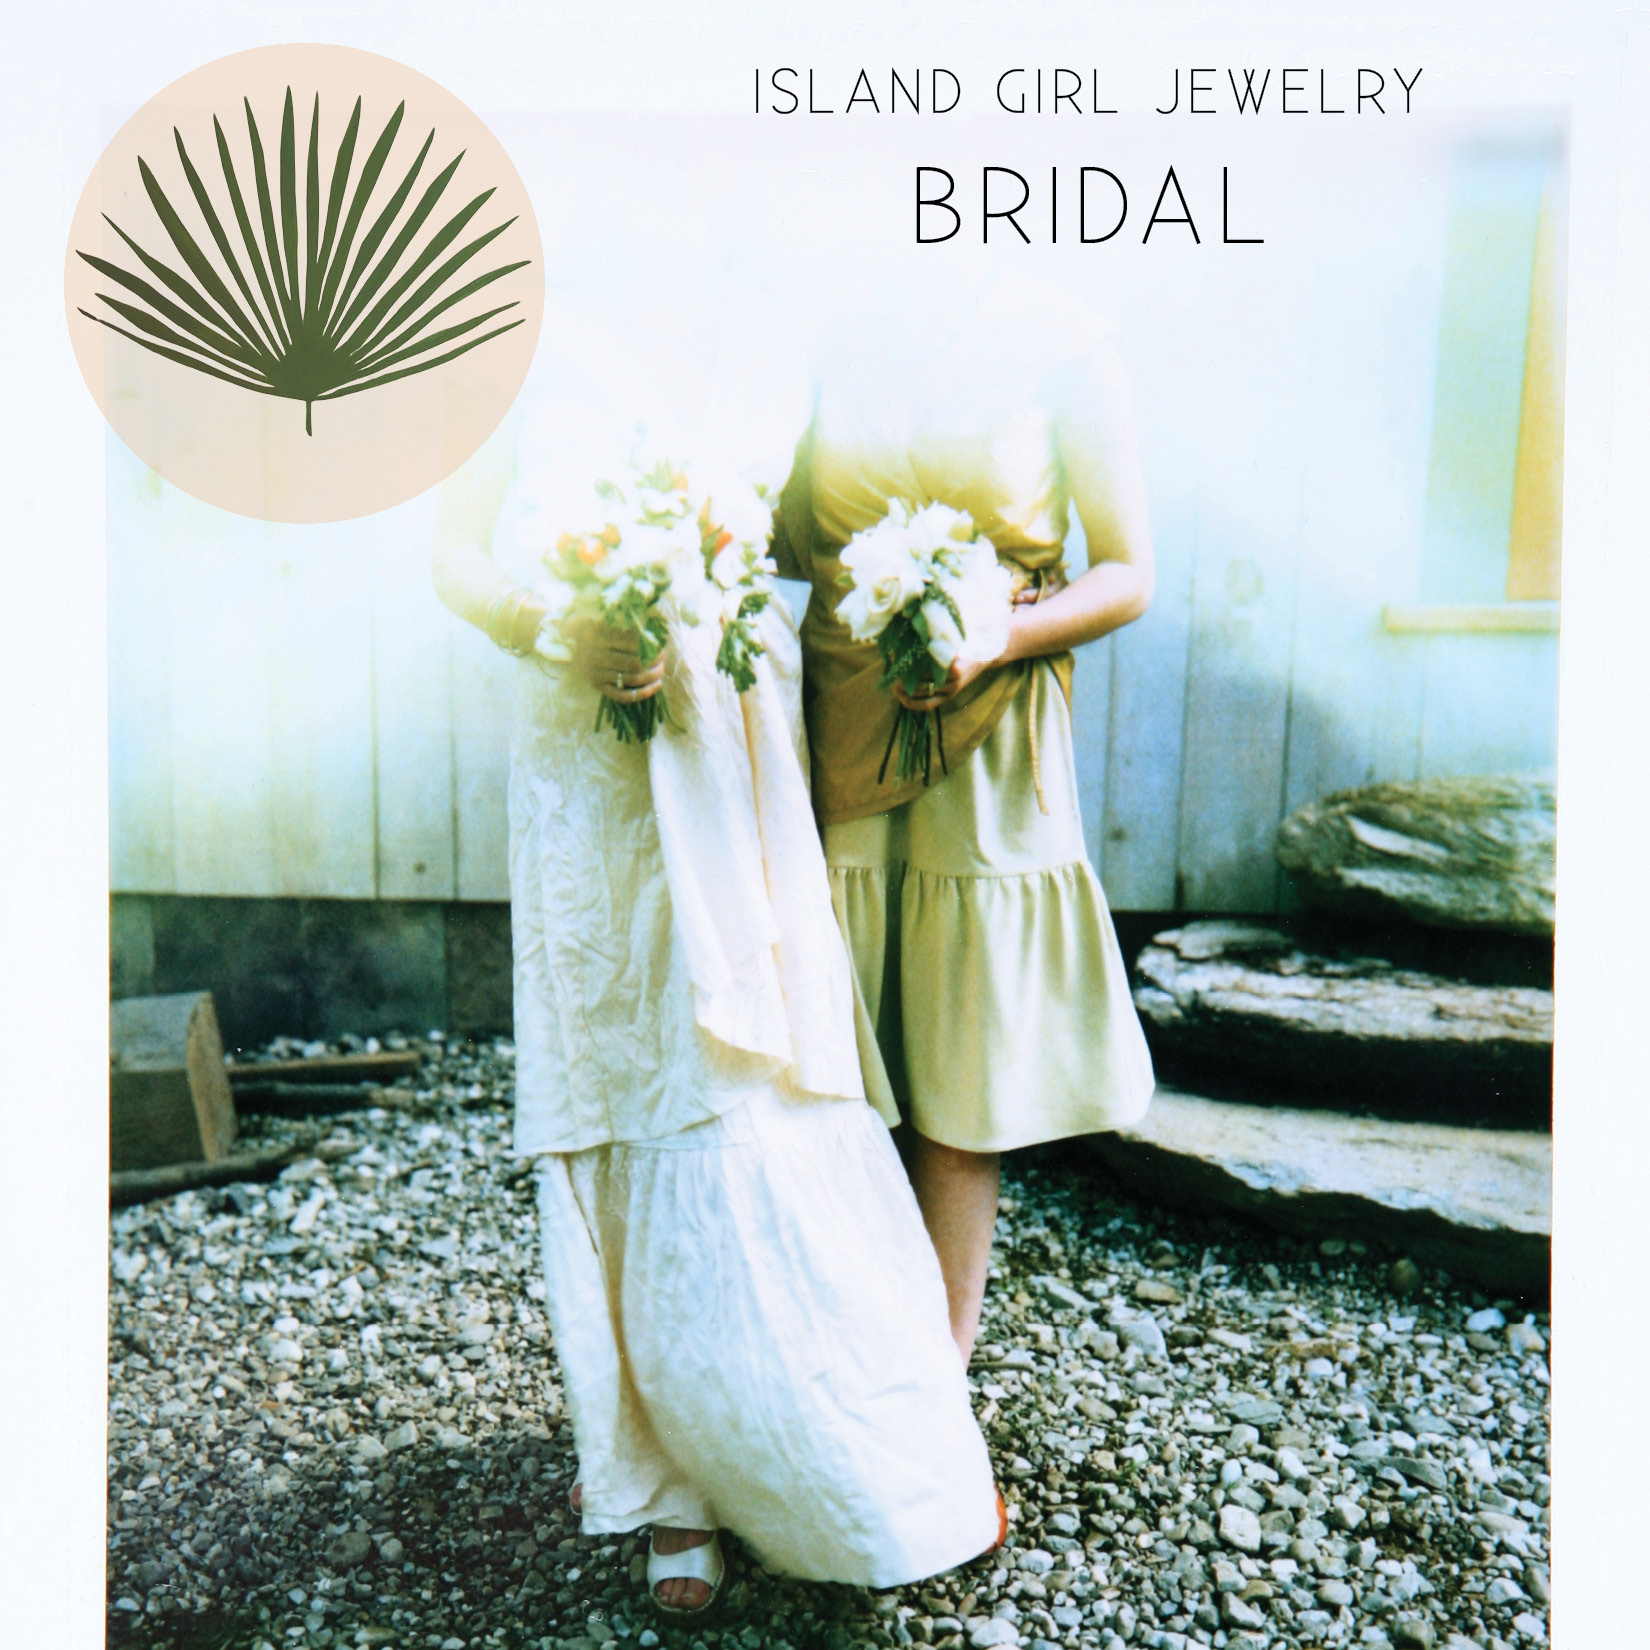 Bridal Party - Treat those who stand by your side as you vow your love to each other with some handmade ISLAND GIRL JEWELRY.